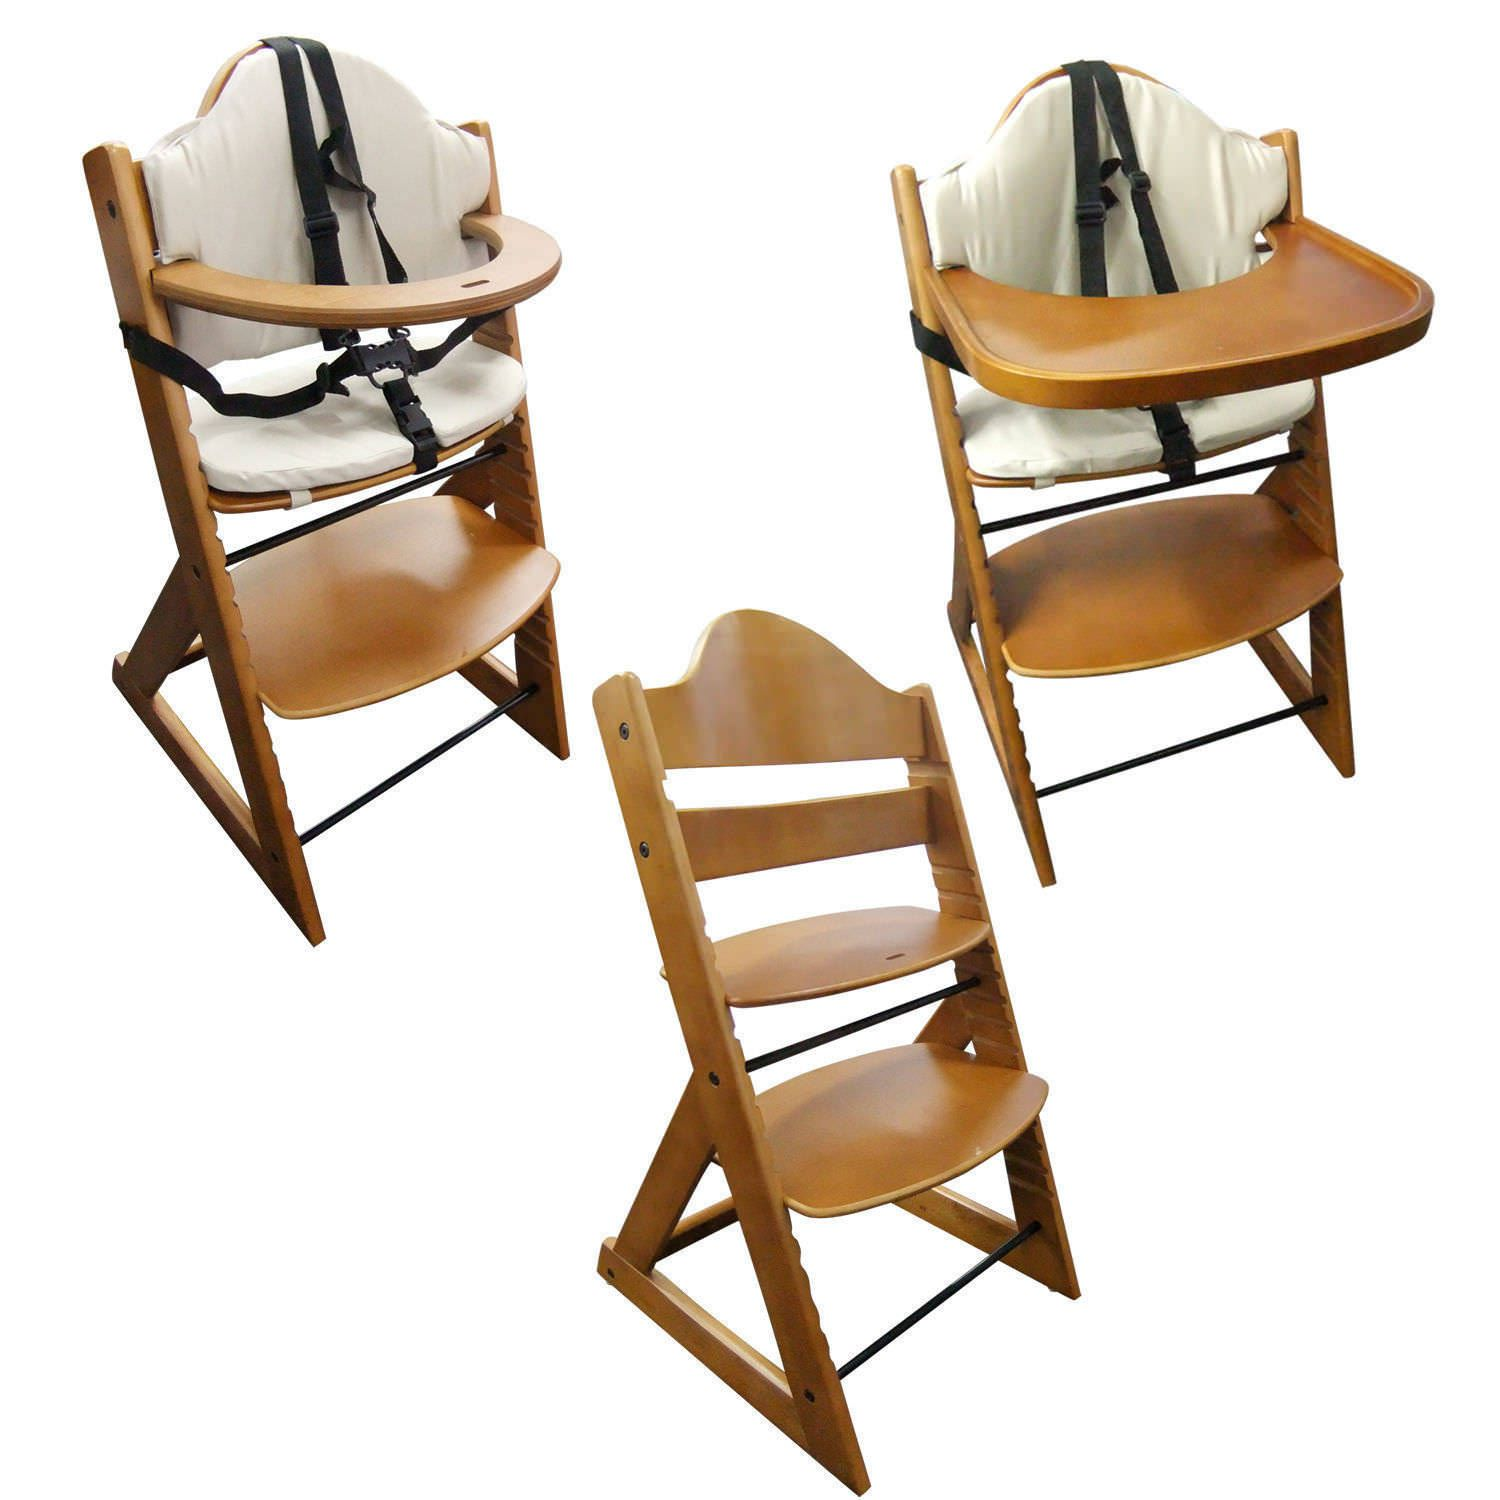 Wooden High Chairs For Babies Wooden Baby High Chair 3in1 With Tray And Bar Teak Baby Highchair Nanny Annie